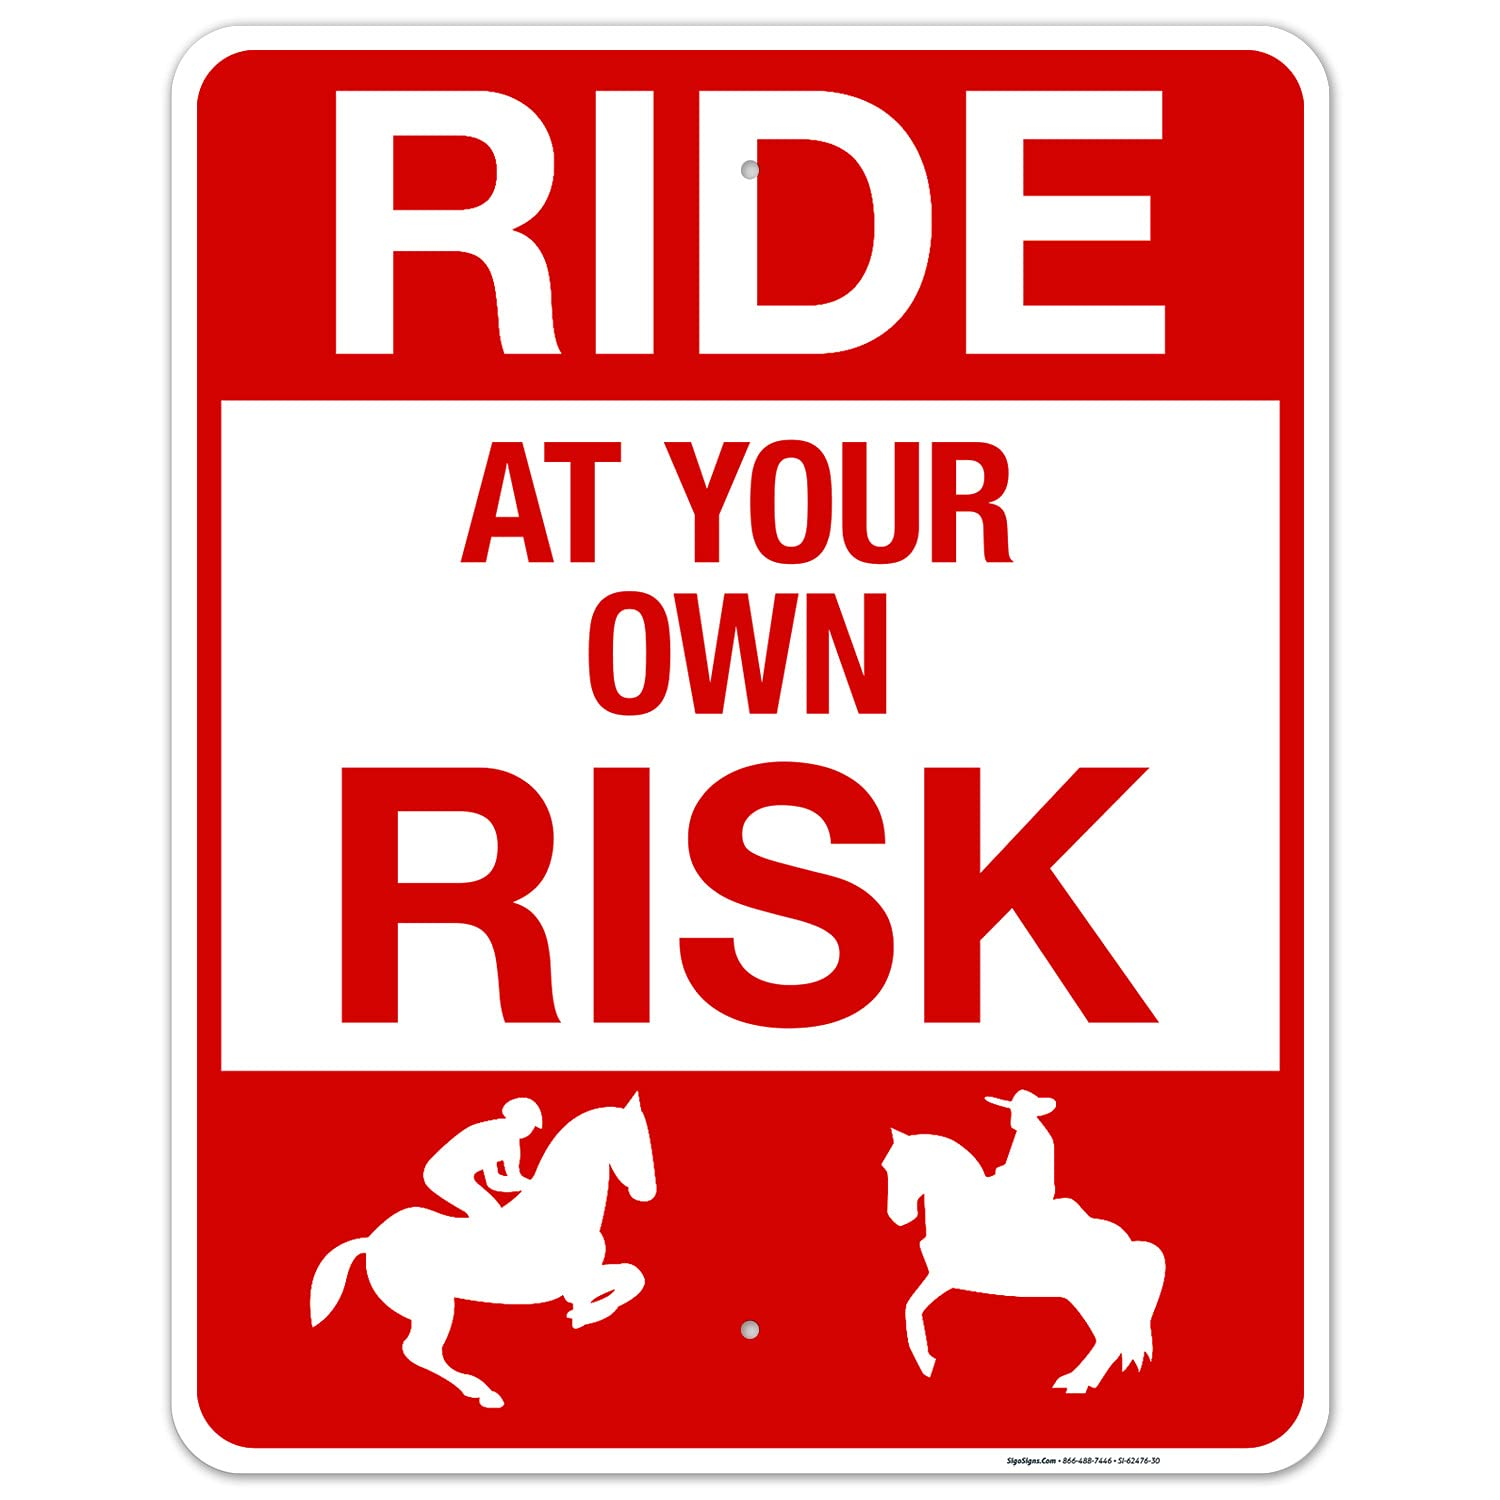 Ride at Your Own Risk Sign Dedication Aluminu Free .063 Rust Inches Deluxe 24x30